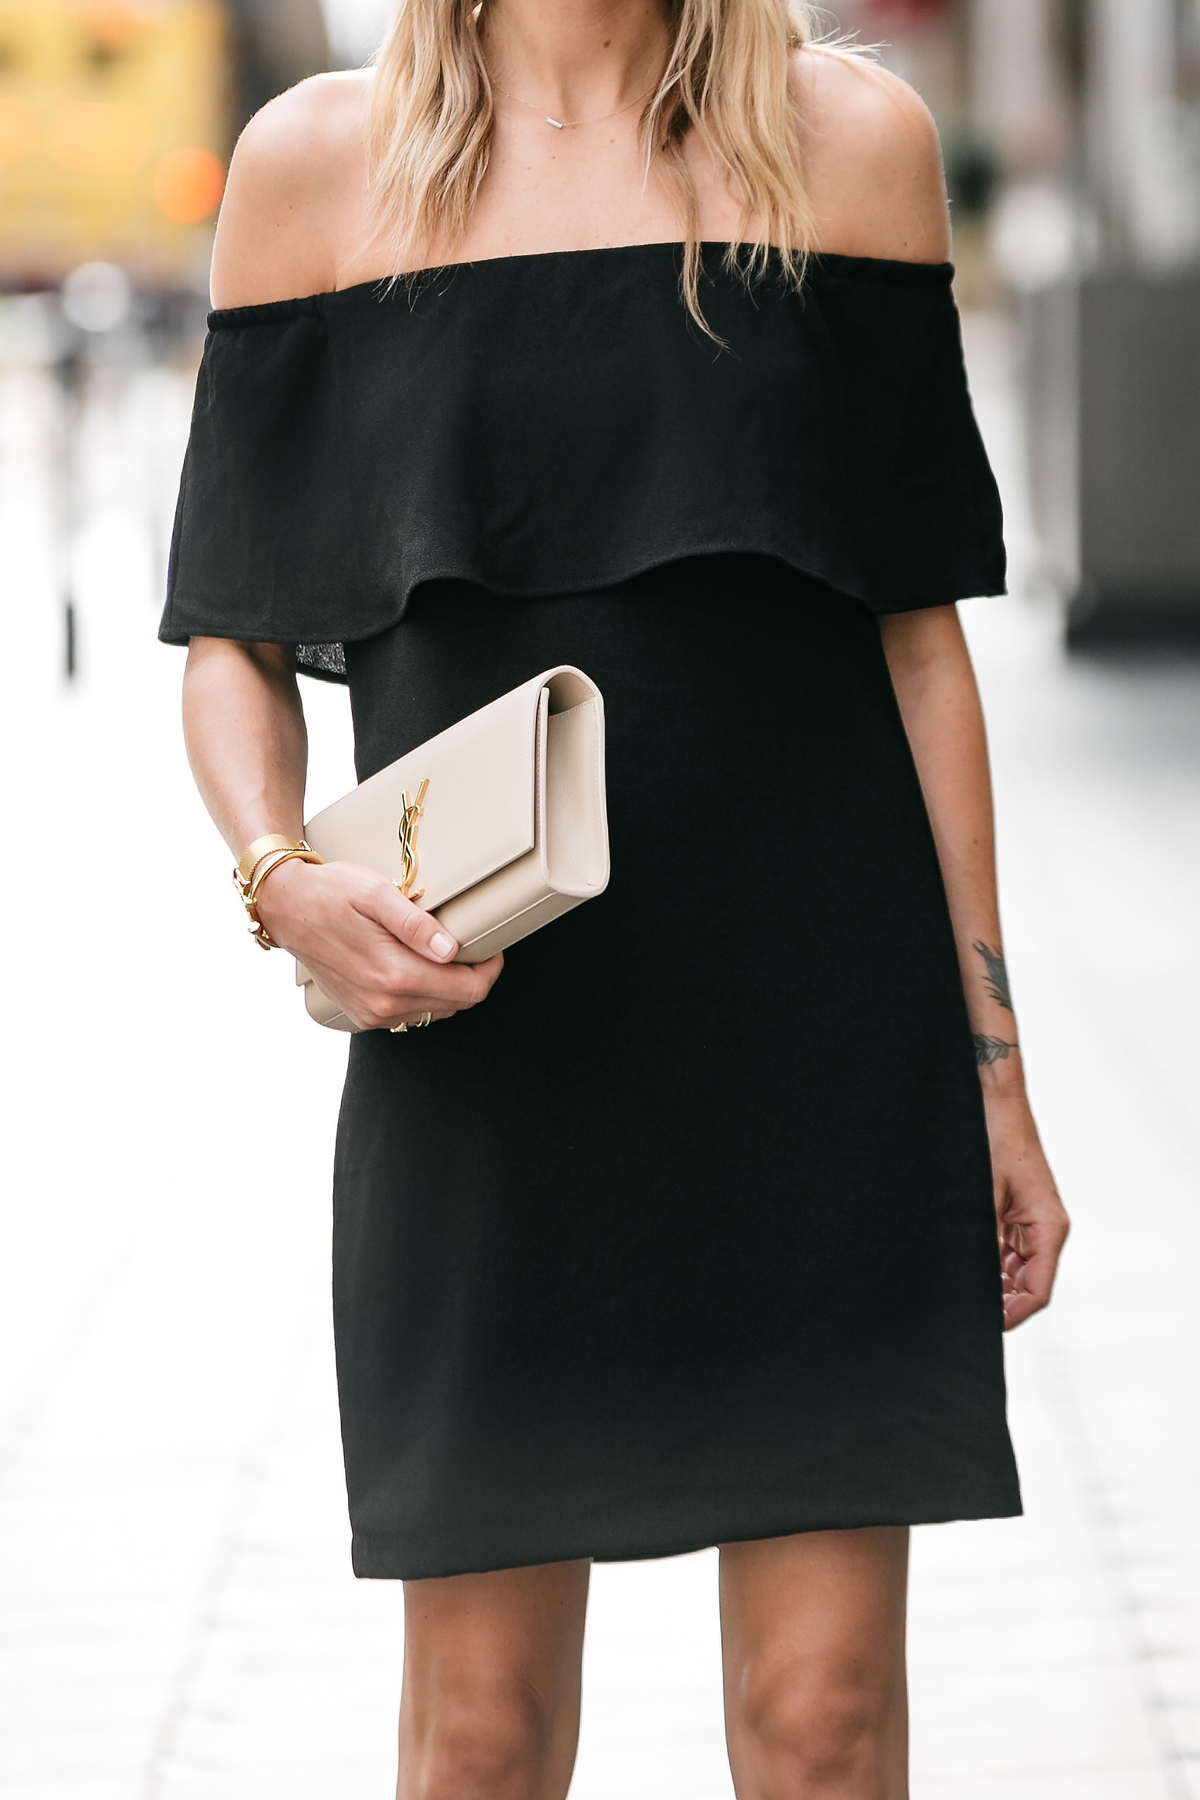 Nordstrom off the shoulder black dress YSL nude clutch little black dress street style dallas blogger fashion blogger